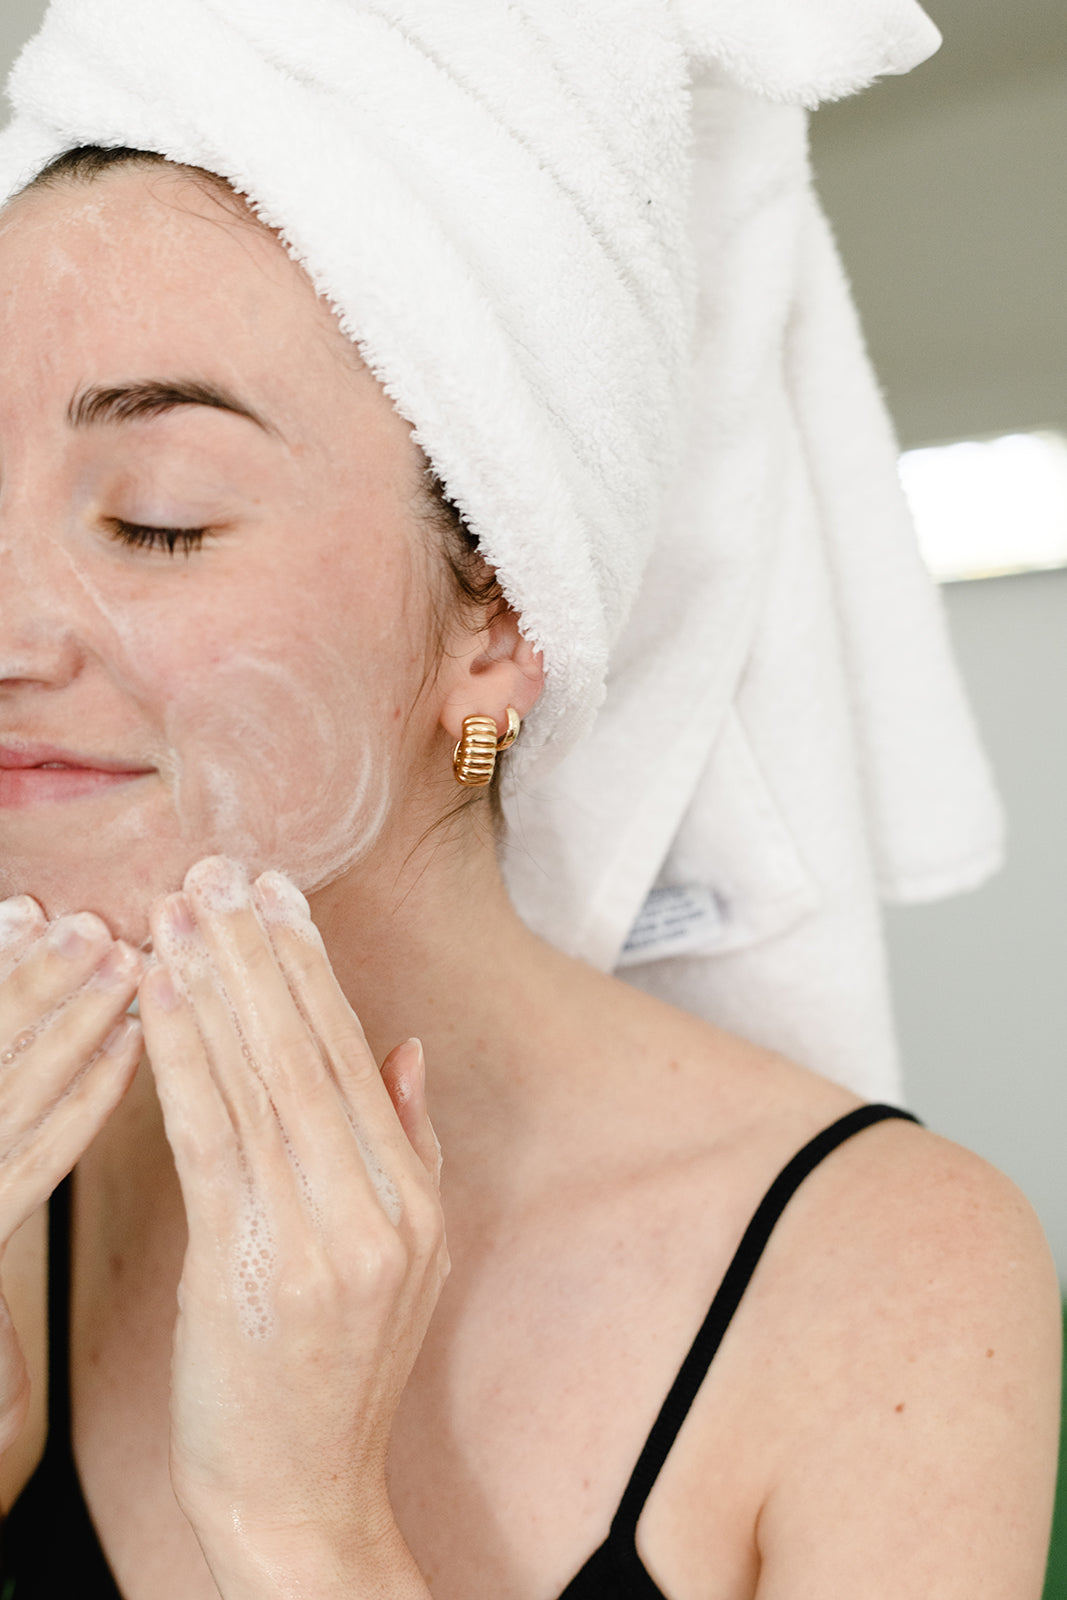 core four must haves for all skin types - girl using cleanser